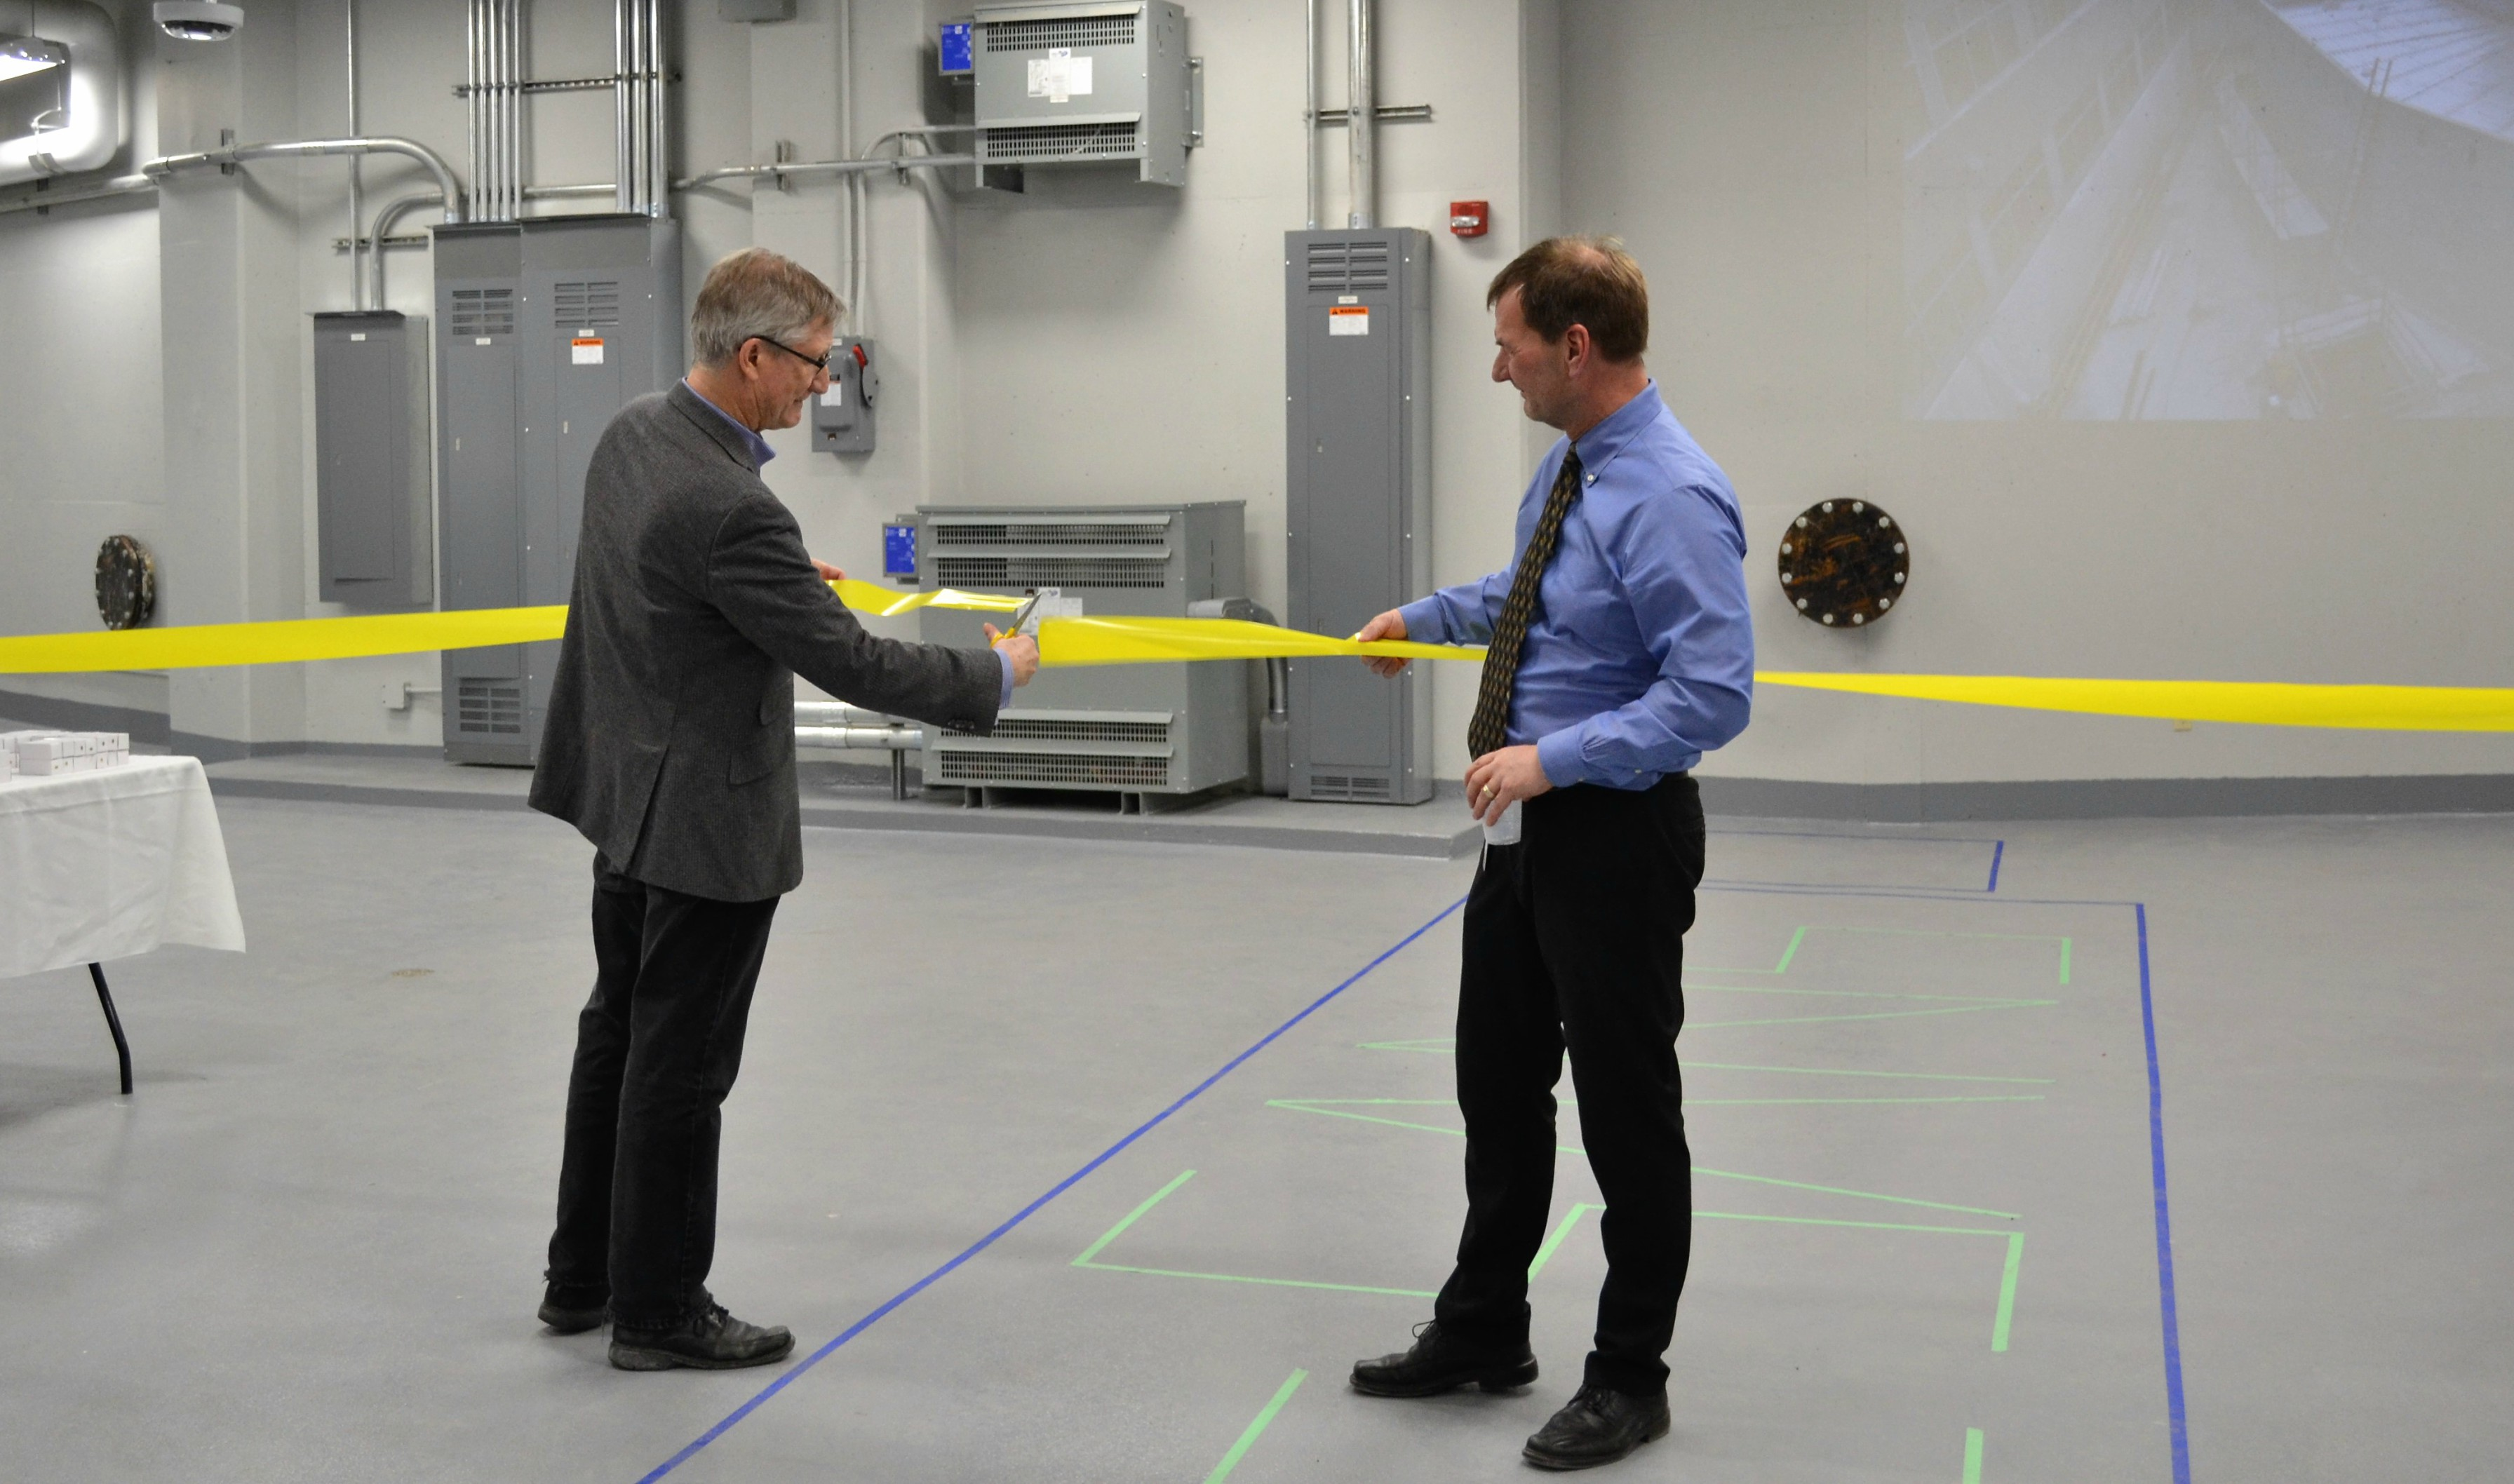 Bruce Gaulin, director of the Brockhouse Institute for Materials Research, left, and Chris Heysel, director of nuclear operations, cut the ribbon to celebrate the completion of the SANS — small angle neutron scattering — guide hall in the Nuclear Research Building.